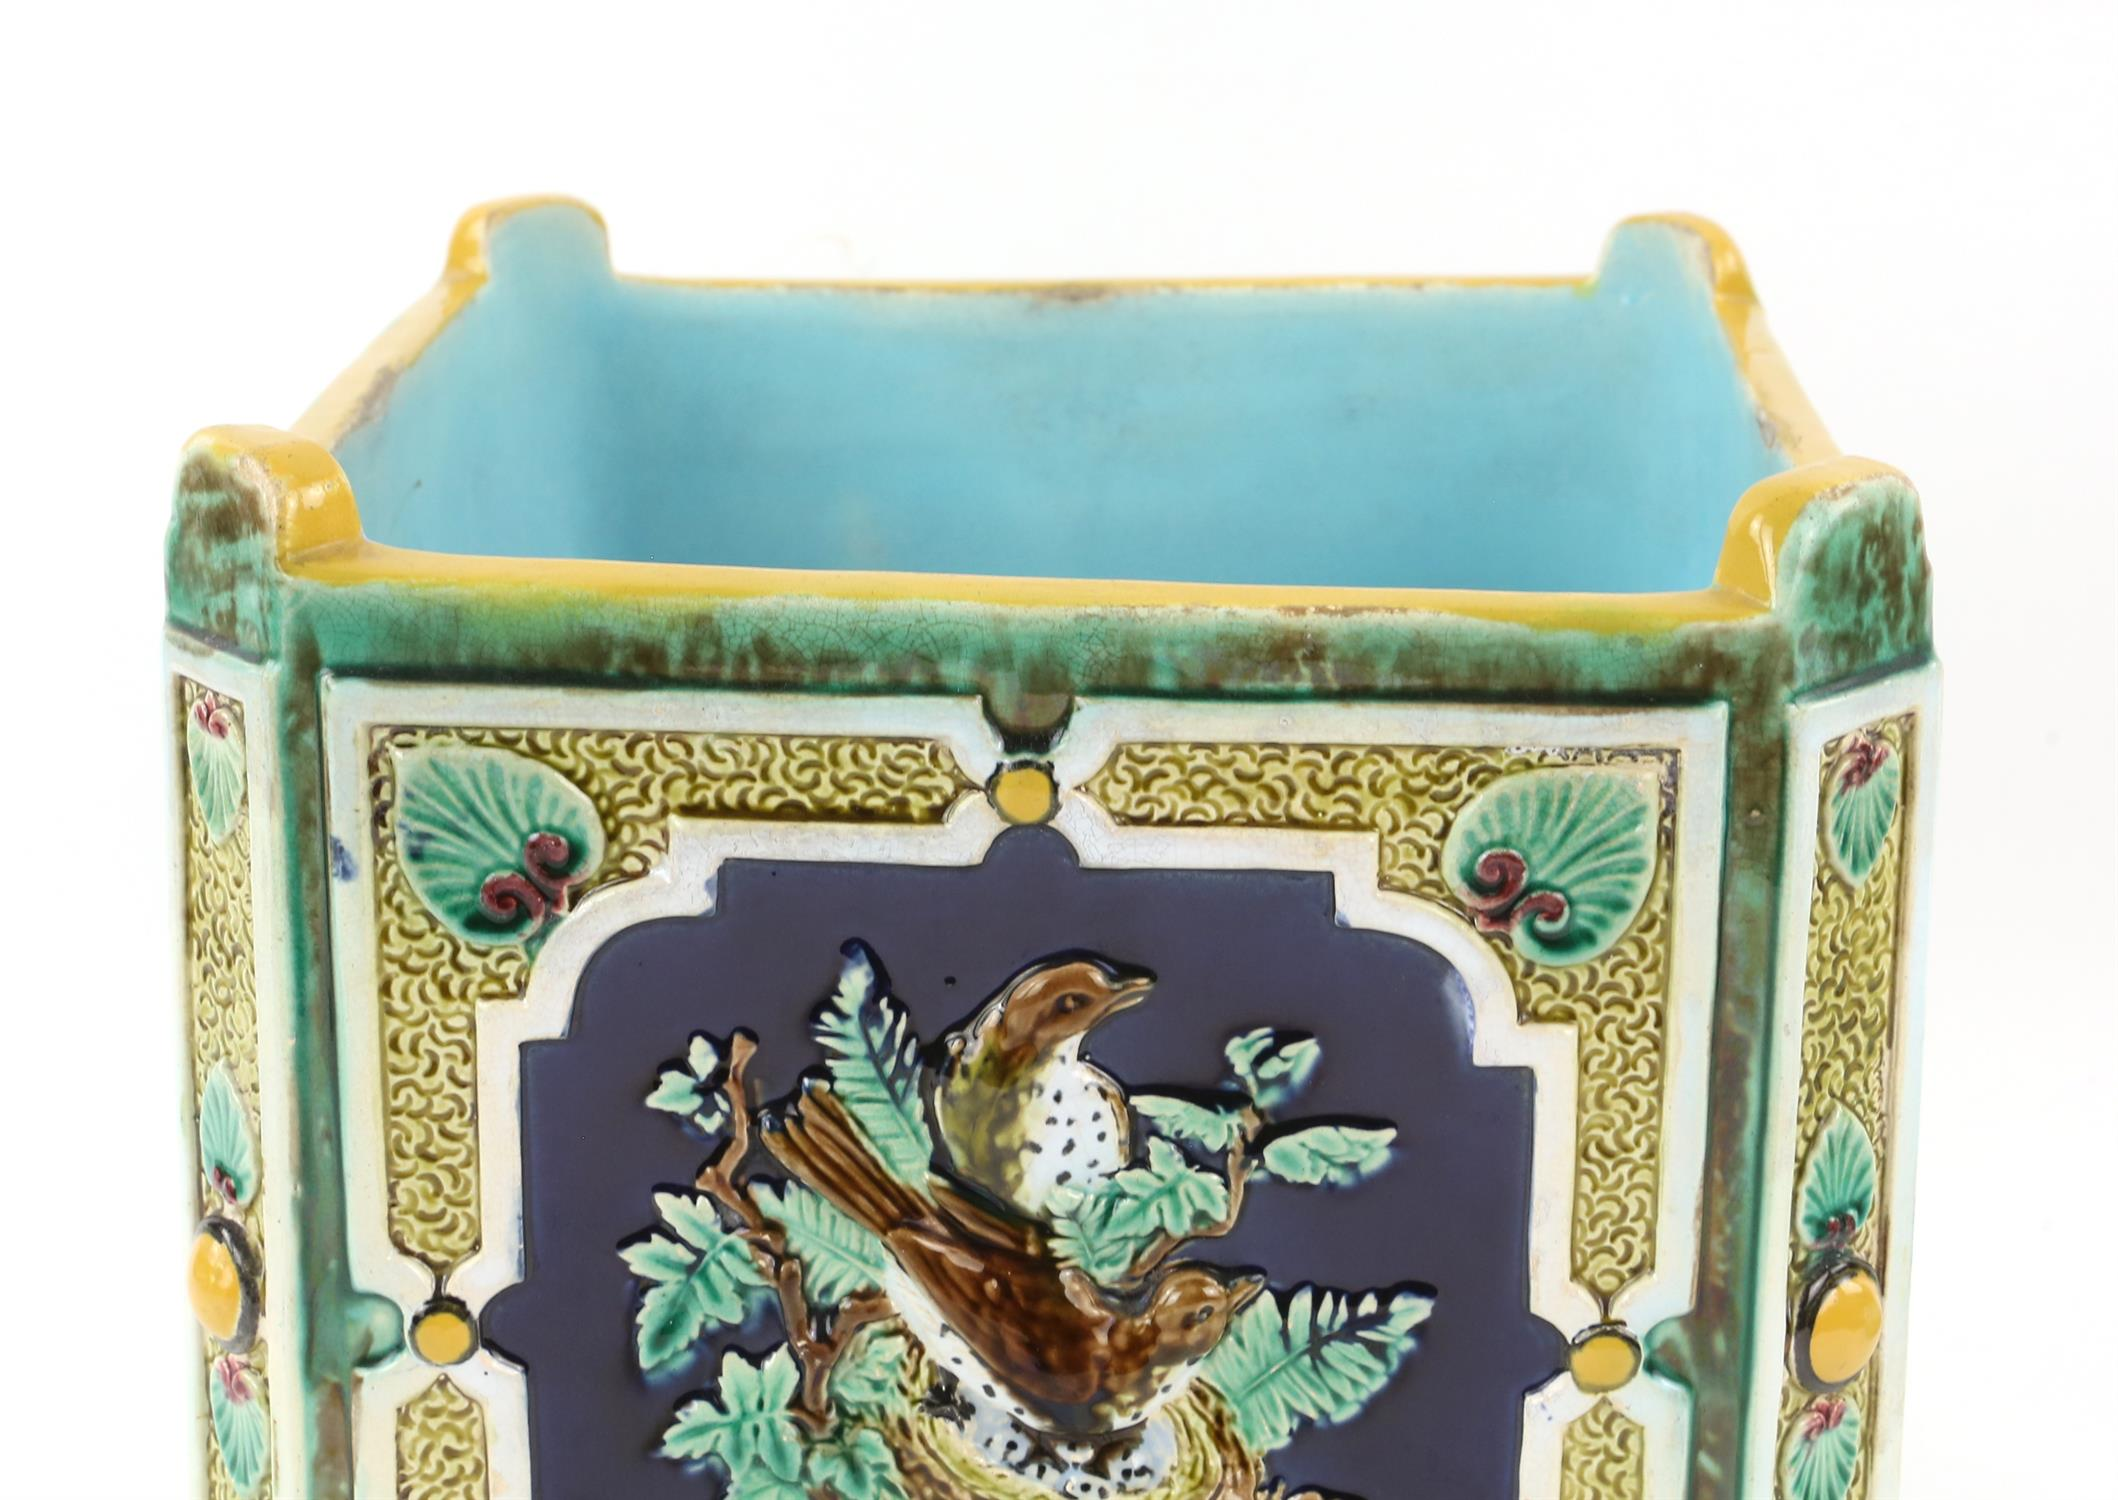 Minton style planter on stand, decorated with pairs of birds on nests. 22cm High, 21.5cm wide, 21. - Image 10 of 10